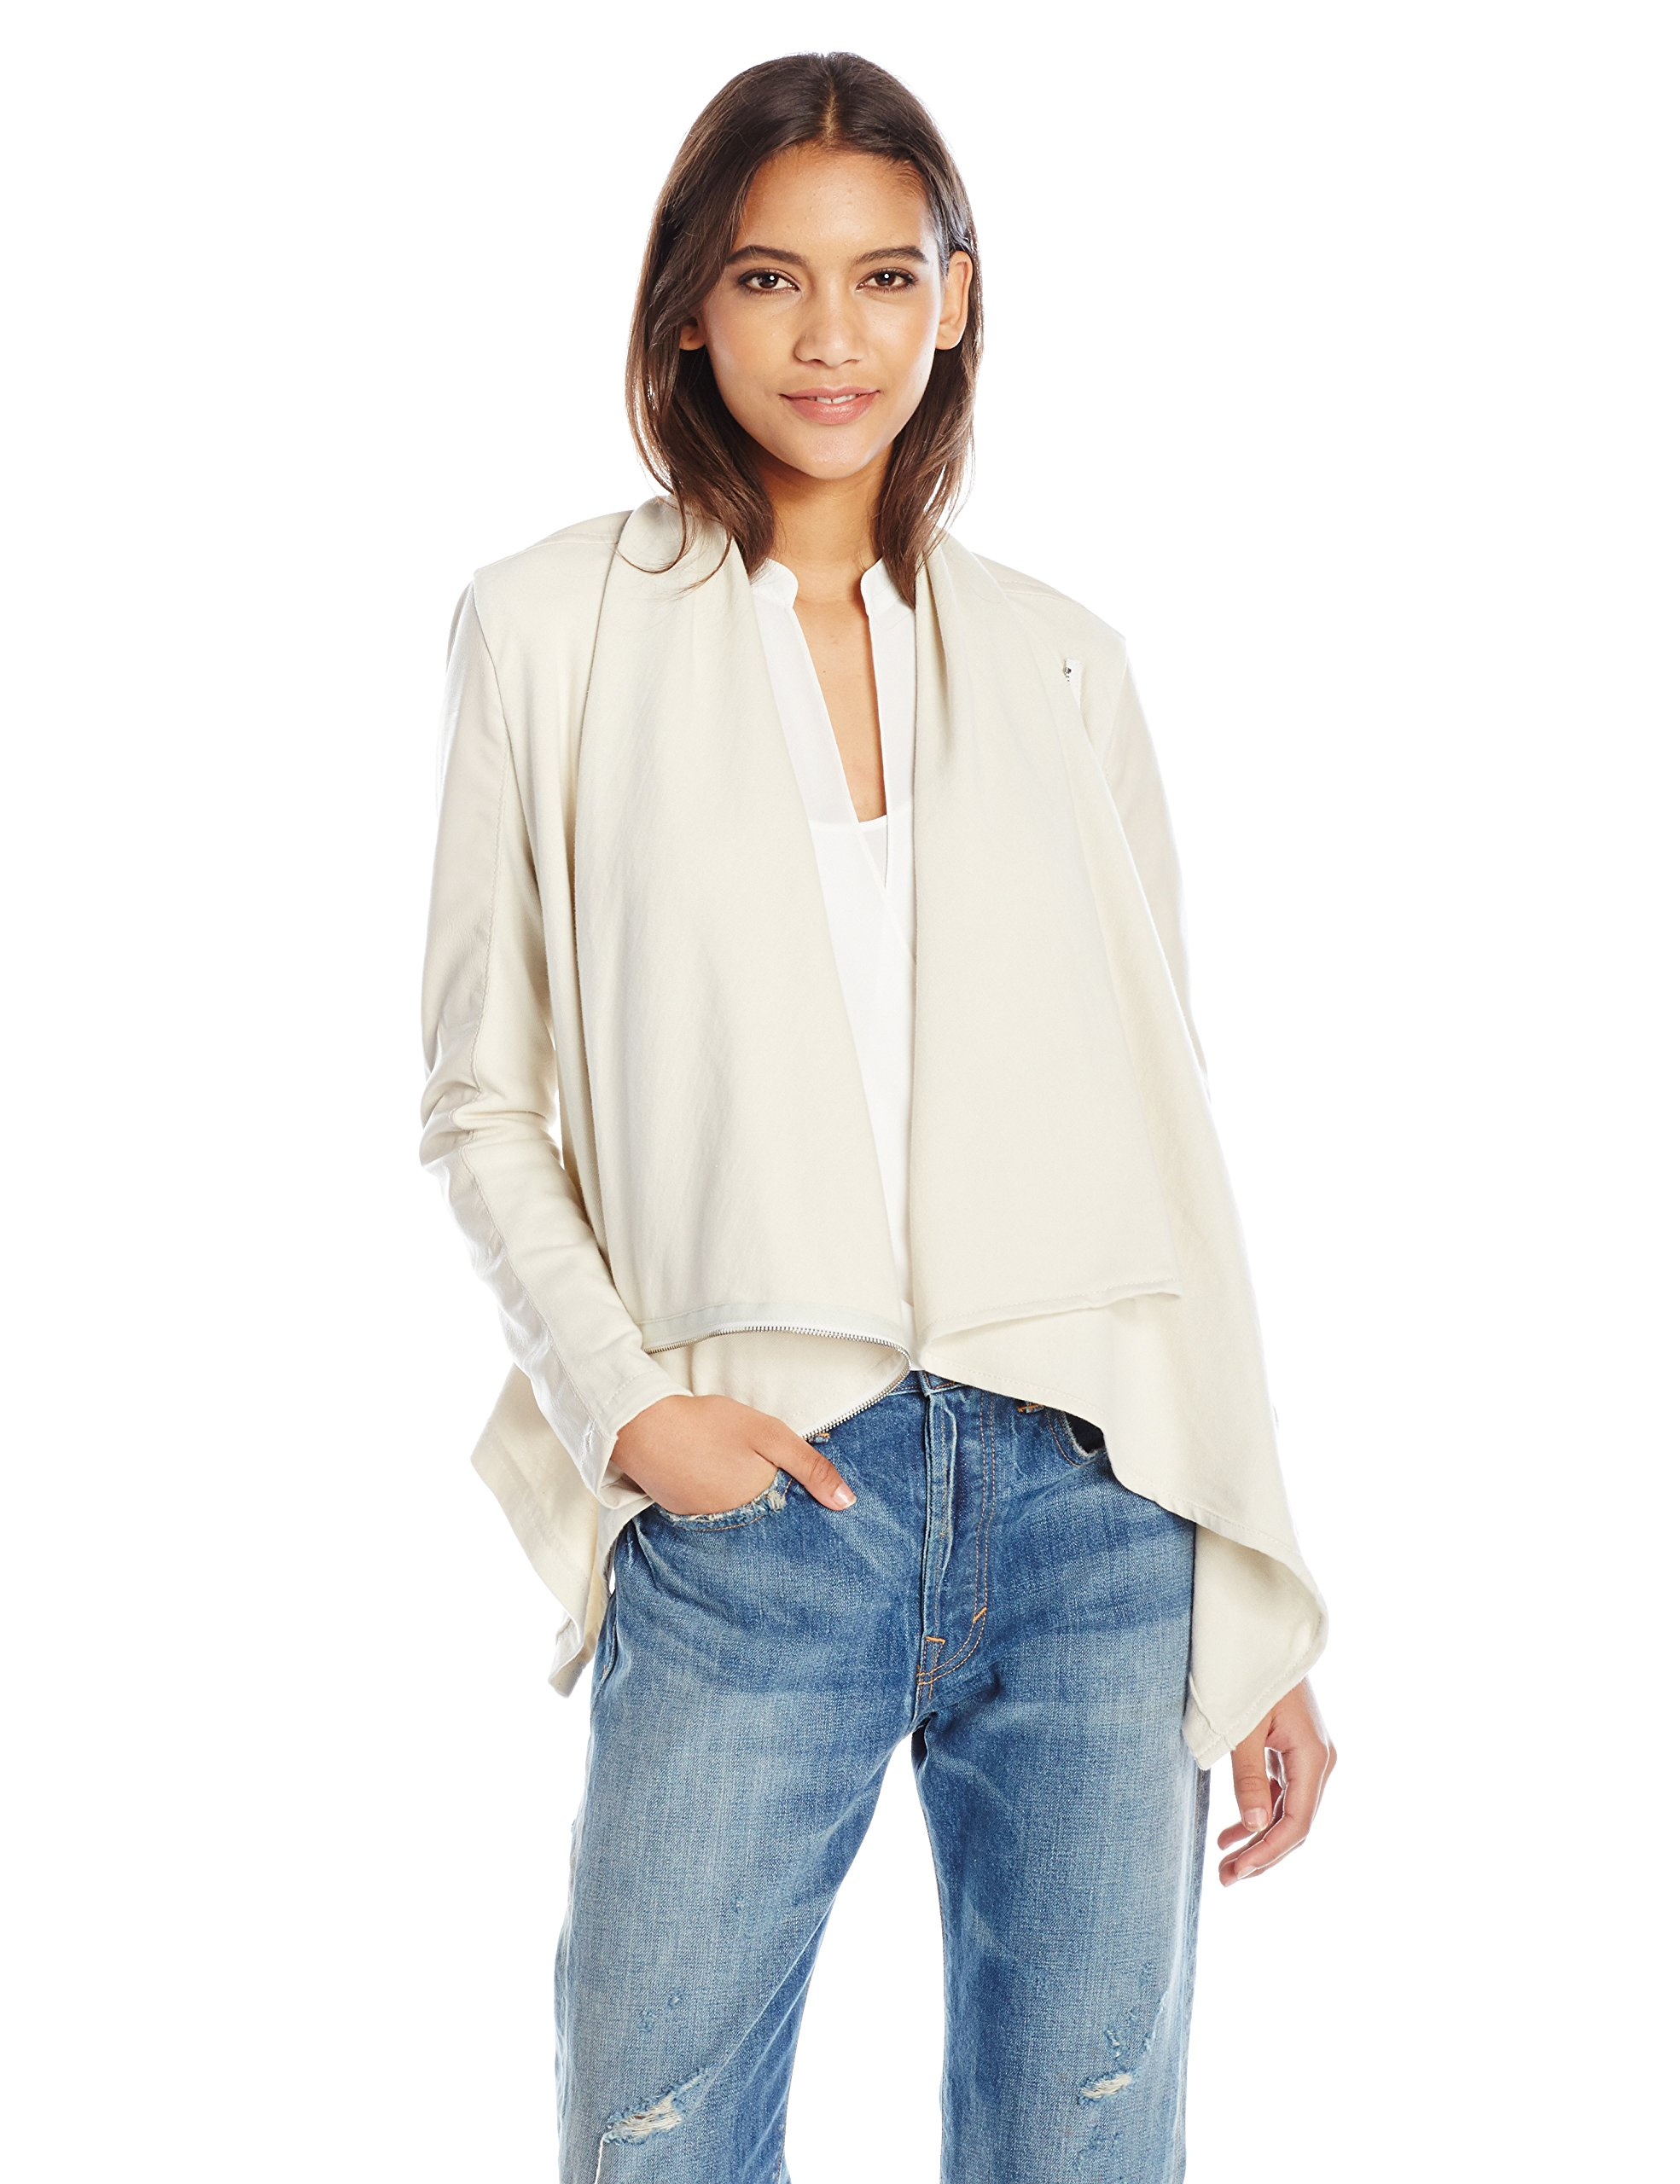 [BLANKNYC] Women's Faux-leather and Knit Jacket, Beige, Small